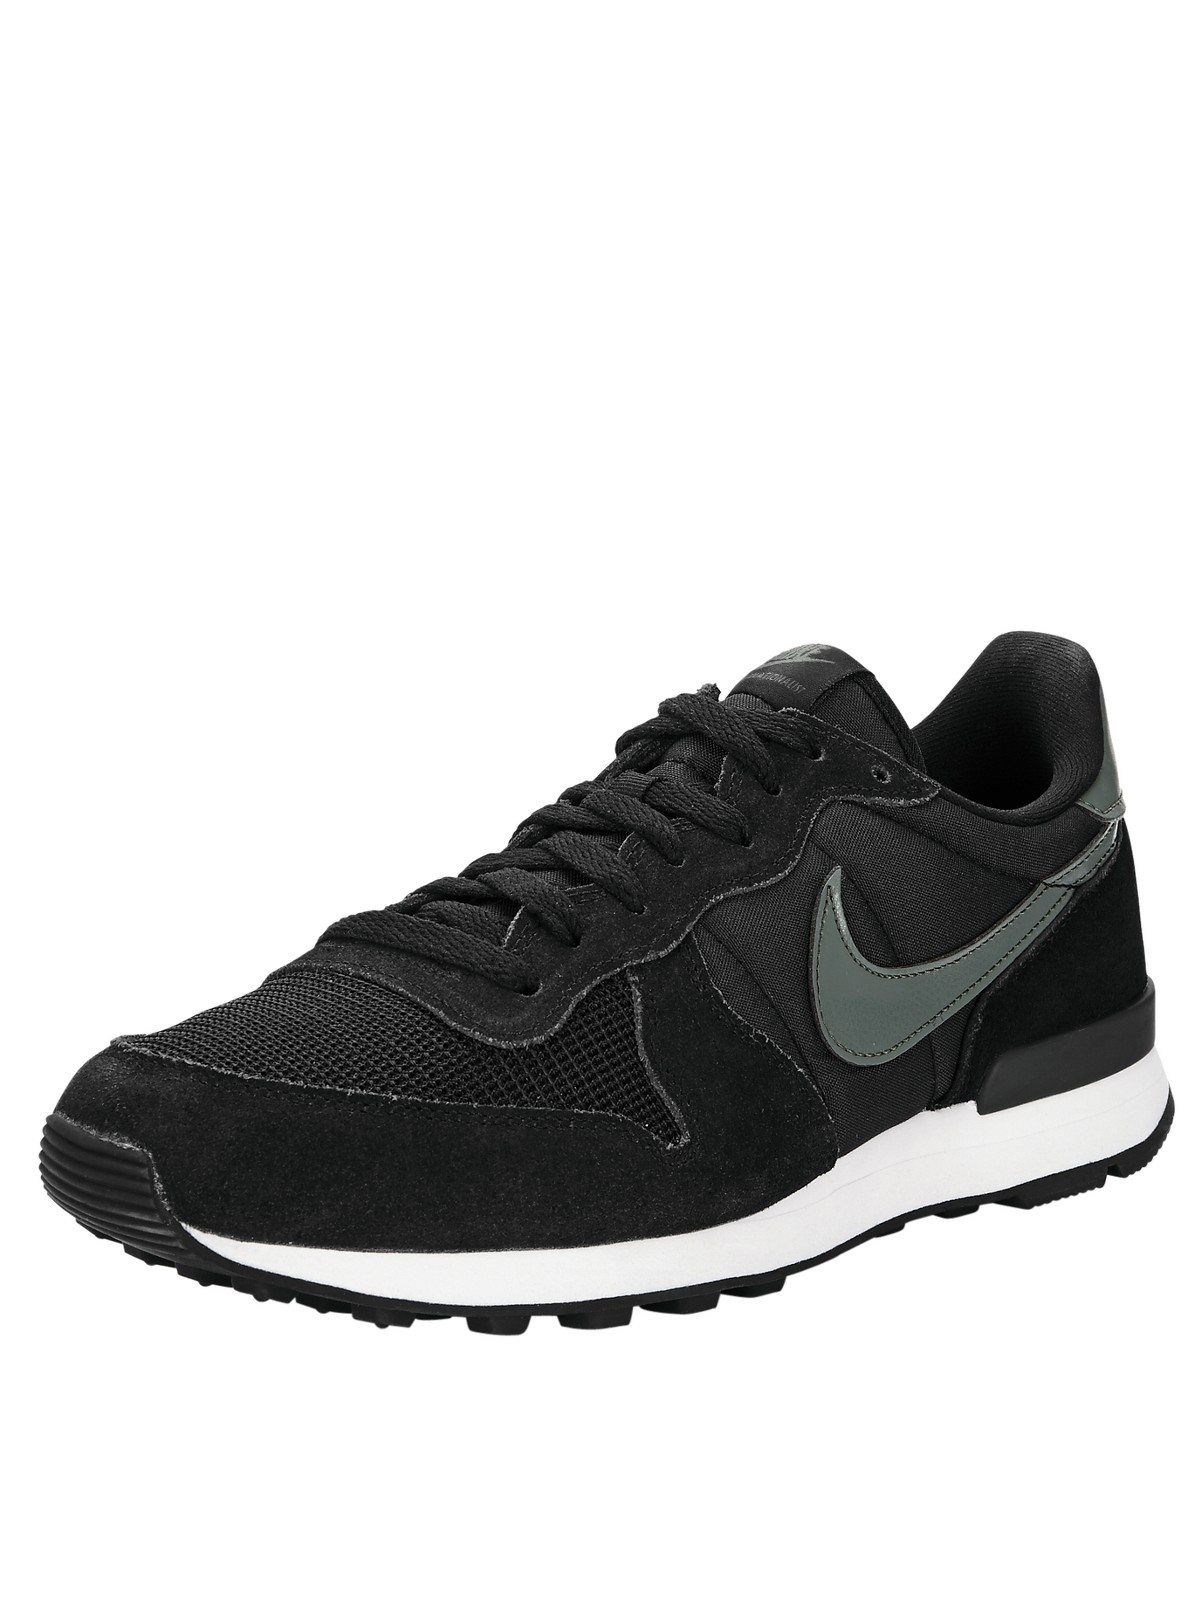 nike nike internationalist in black for men black grey. Black Bedroom Furniture Sets. Home Design Ideas